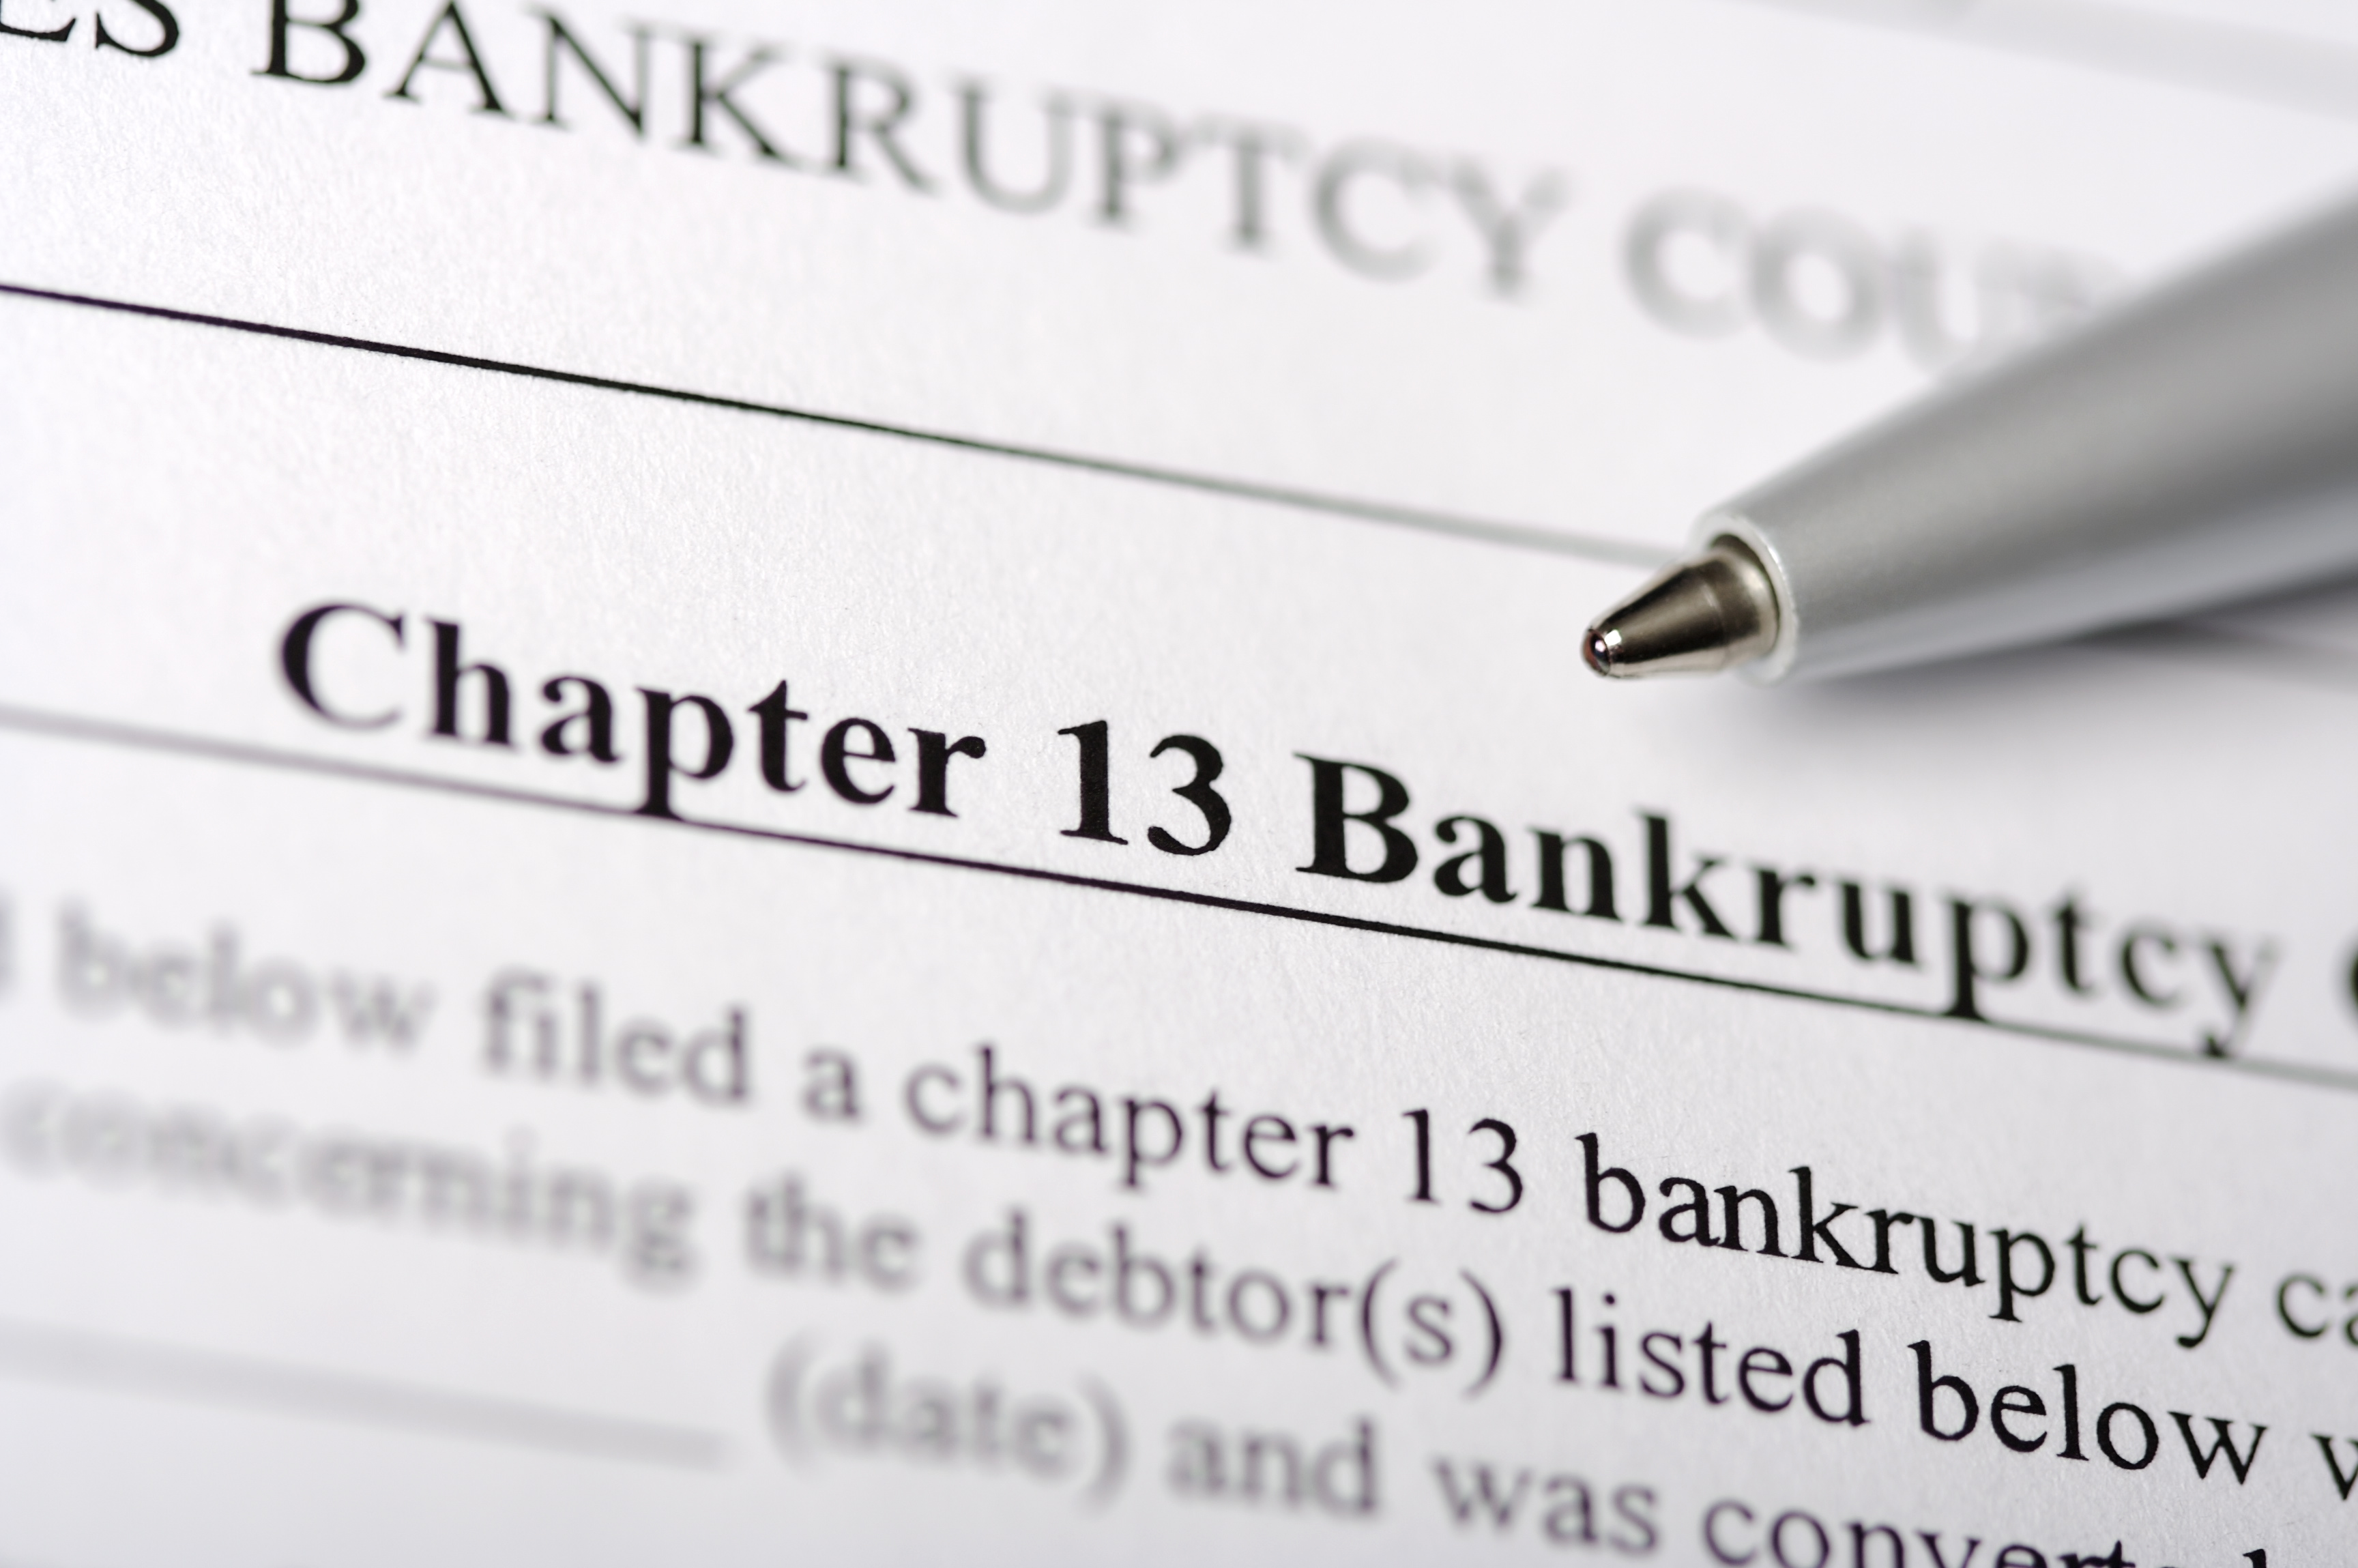 Condominium assessments and bankruptcy: What can associations collect?